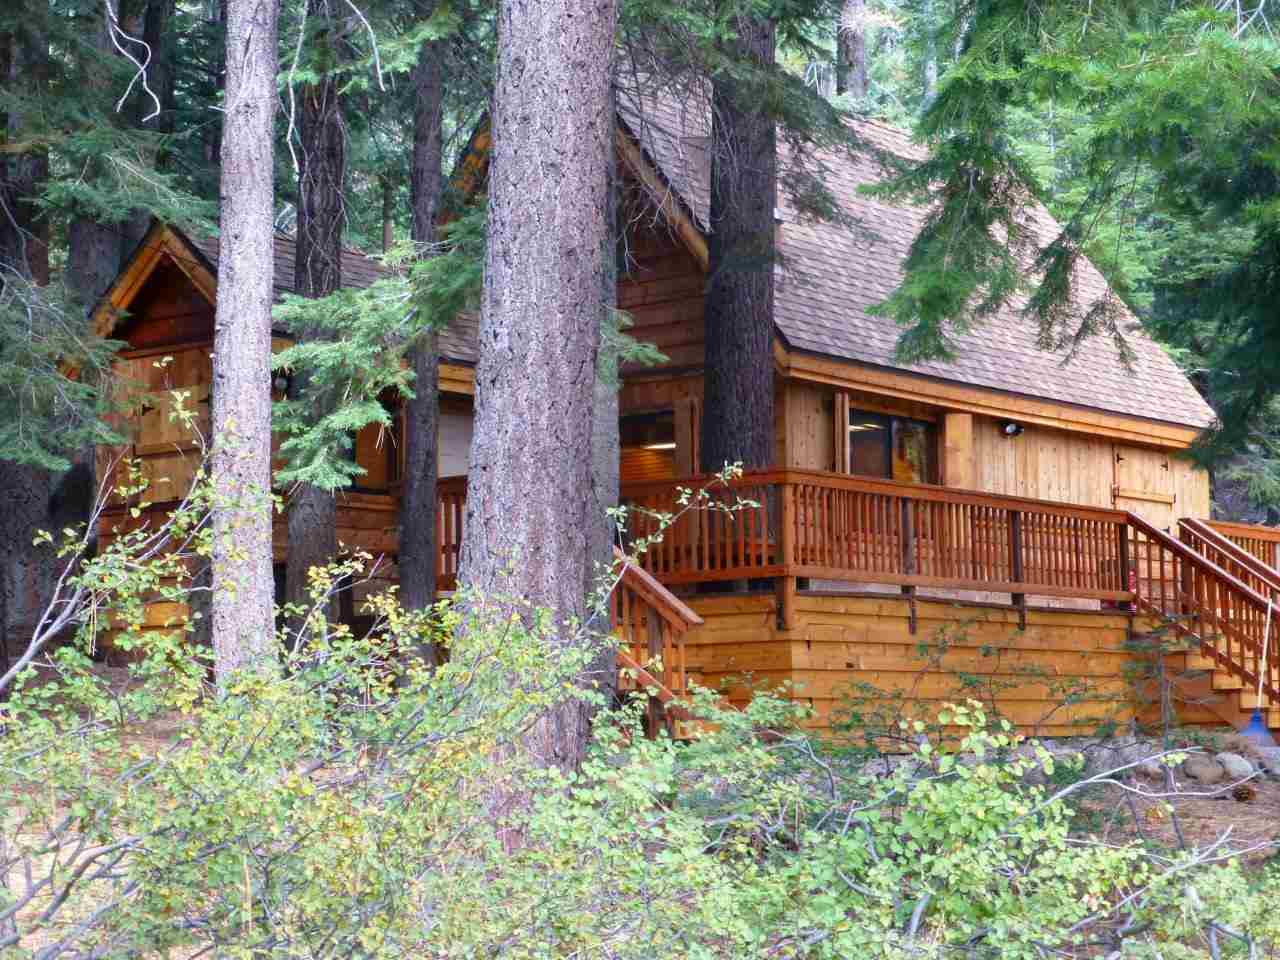 Single Family Home for Active at 910 Ward Creek Blvd Tahoe City, California 96145 United States